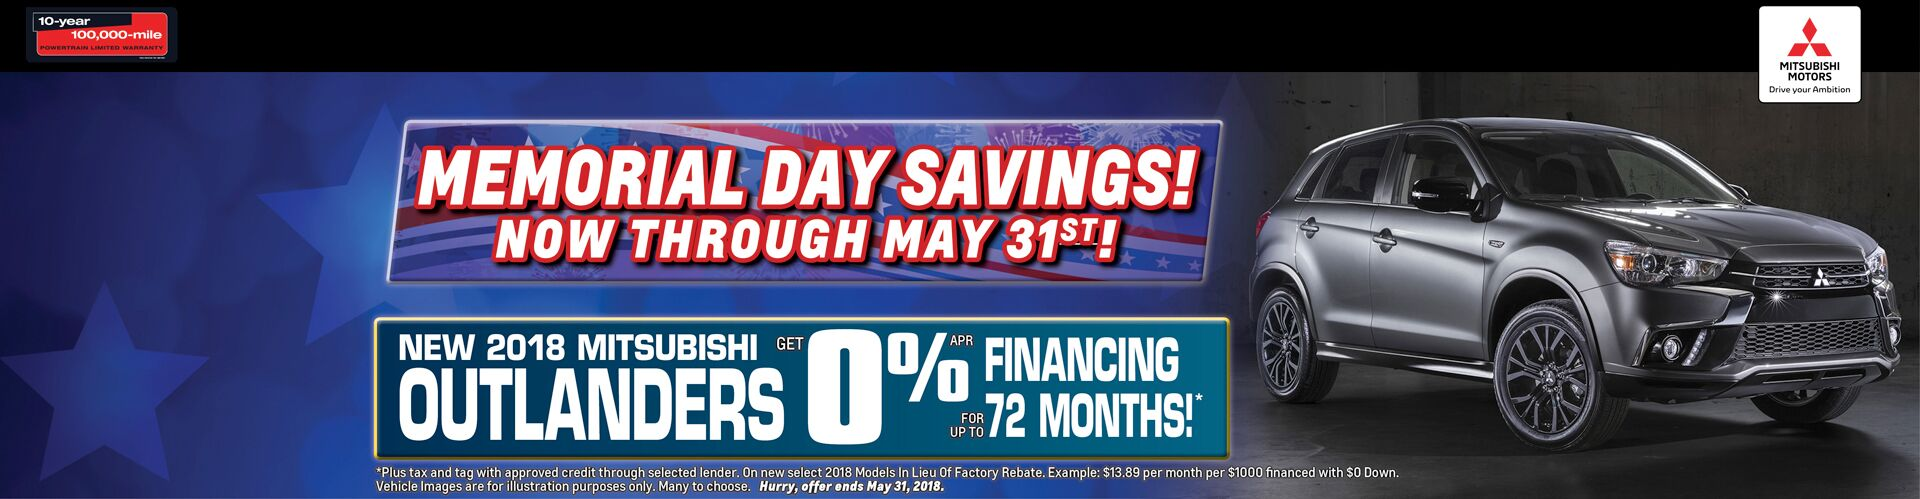 Outlanders! 0% apr Financing Up To 72 Months!